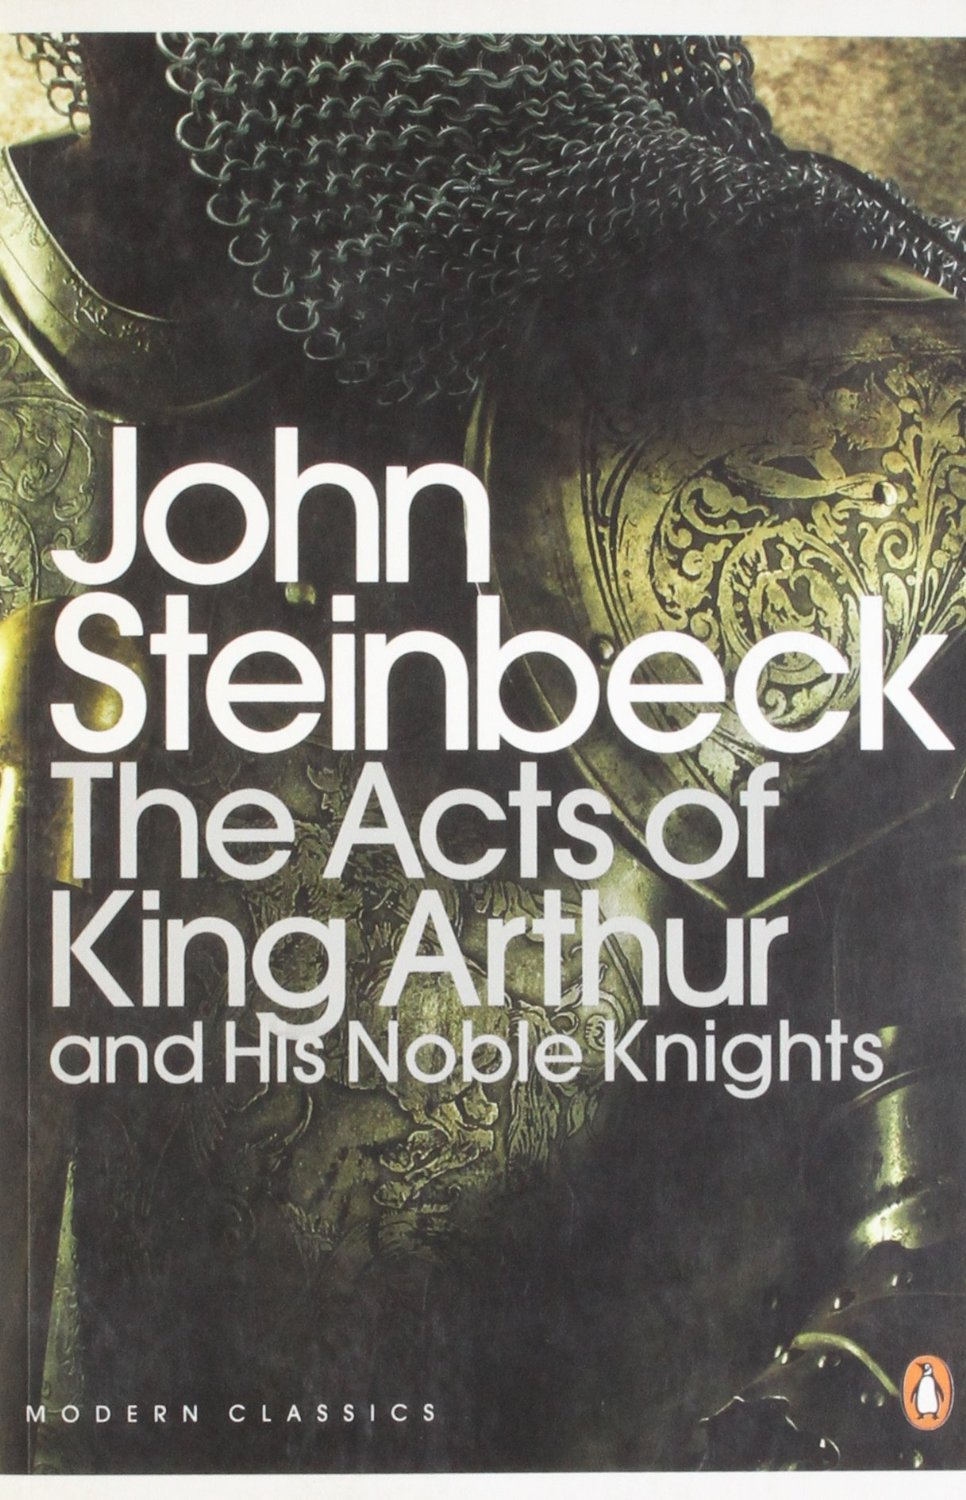 the_acts_of_king_arthur_and_his_noble_knights